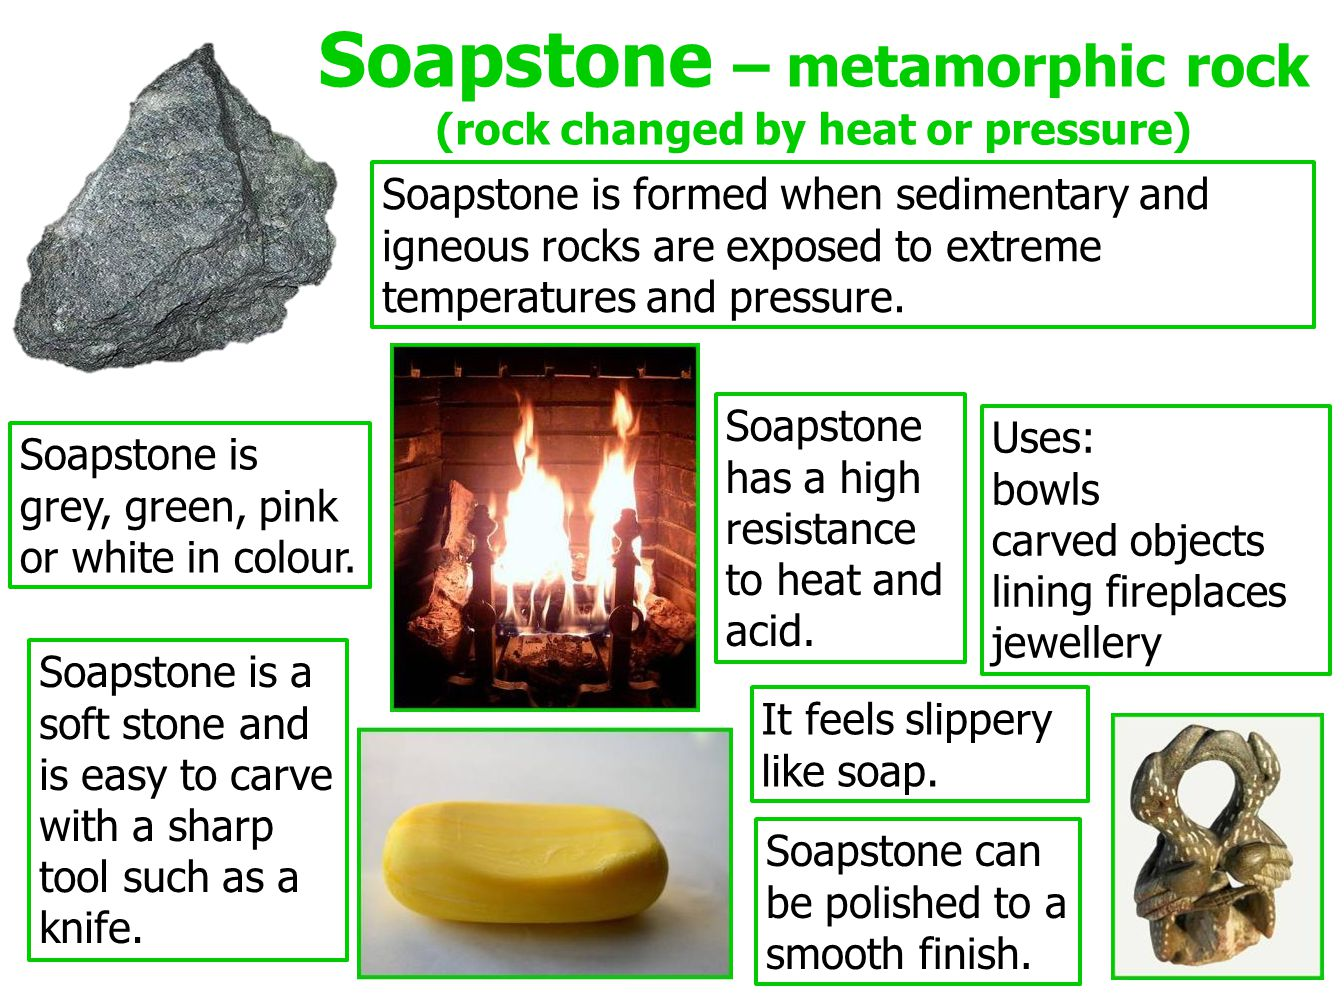 Soapstone – metamorphic rock (rock changed by heat or pressure) Soapstone is formed when sedimentary and igneous rocks are exposed to extreme temperatures and pressure.